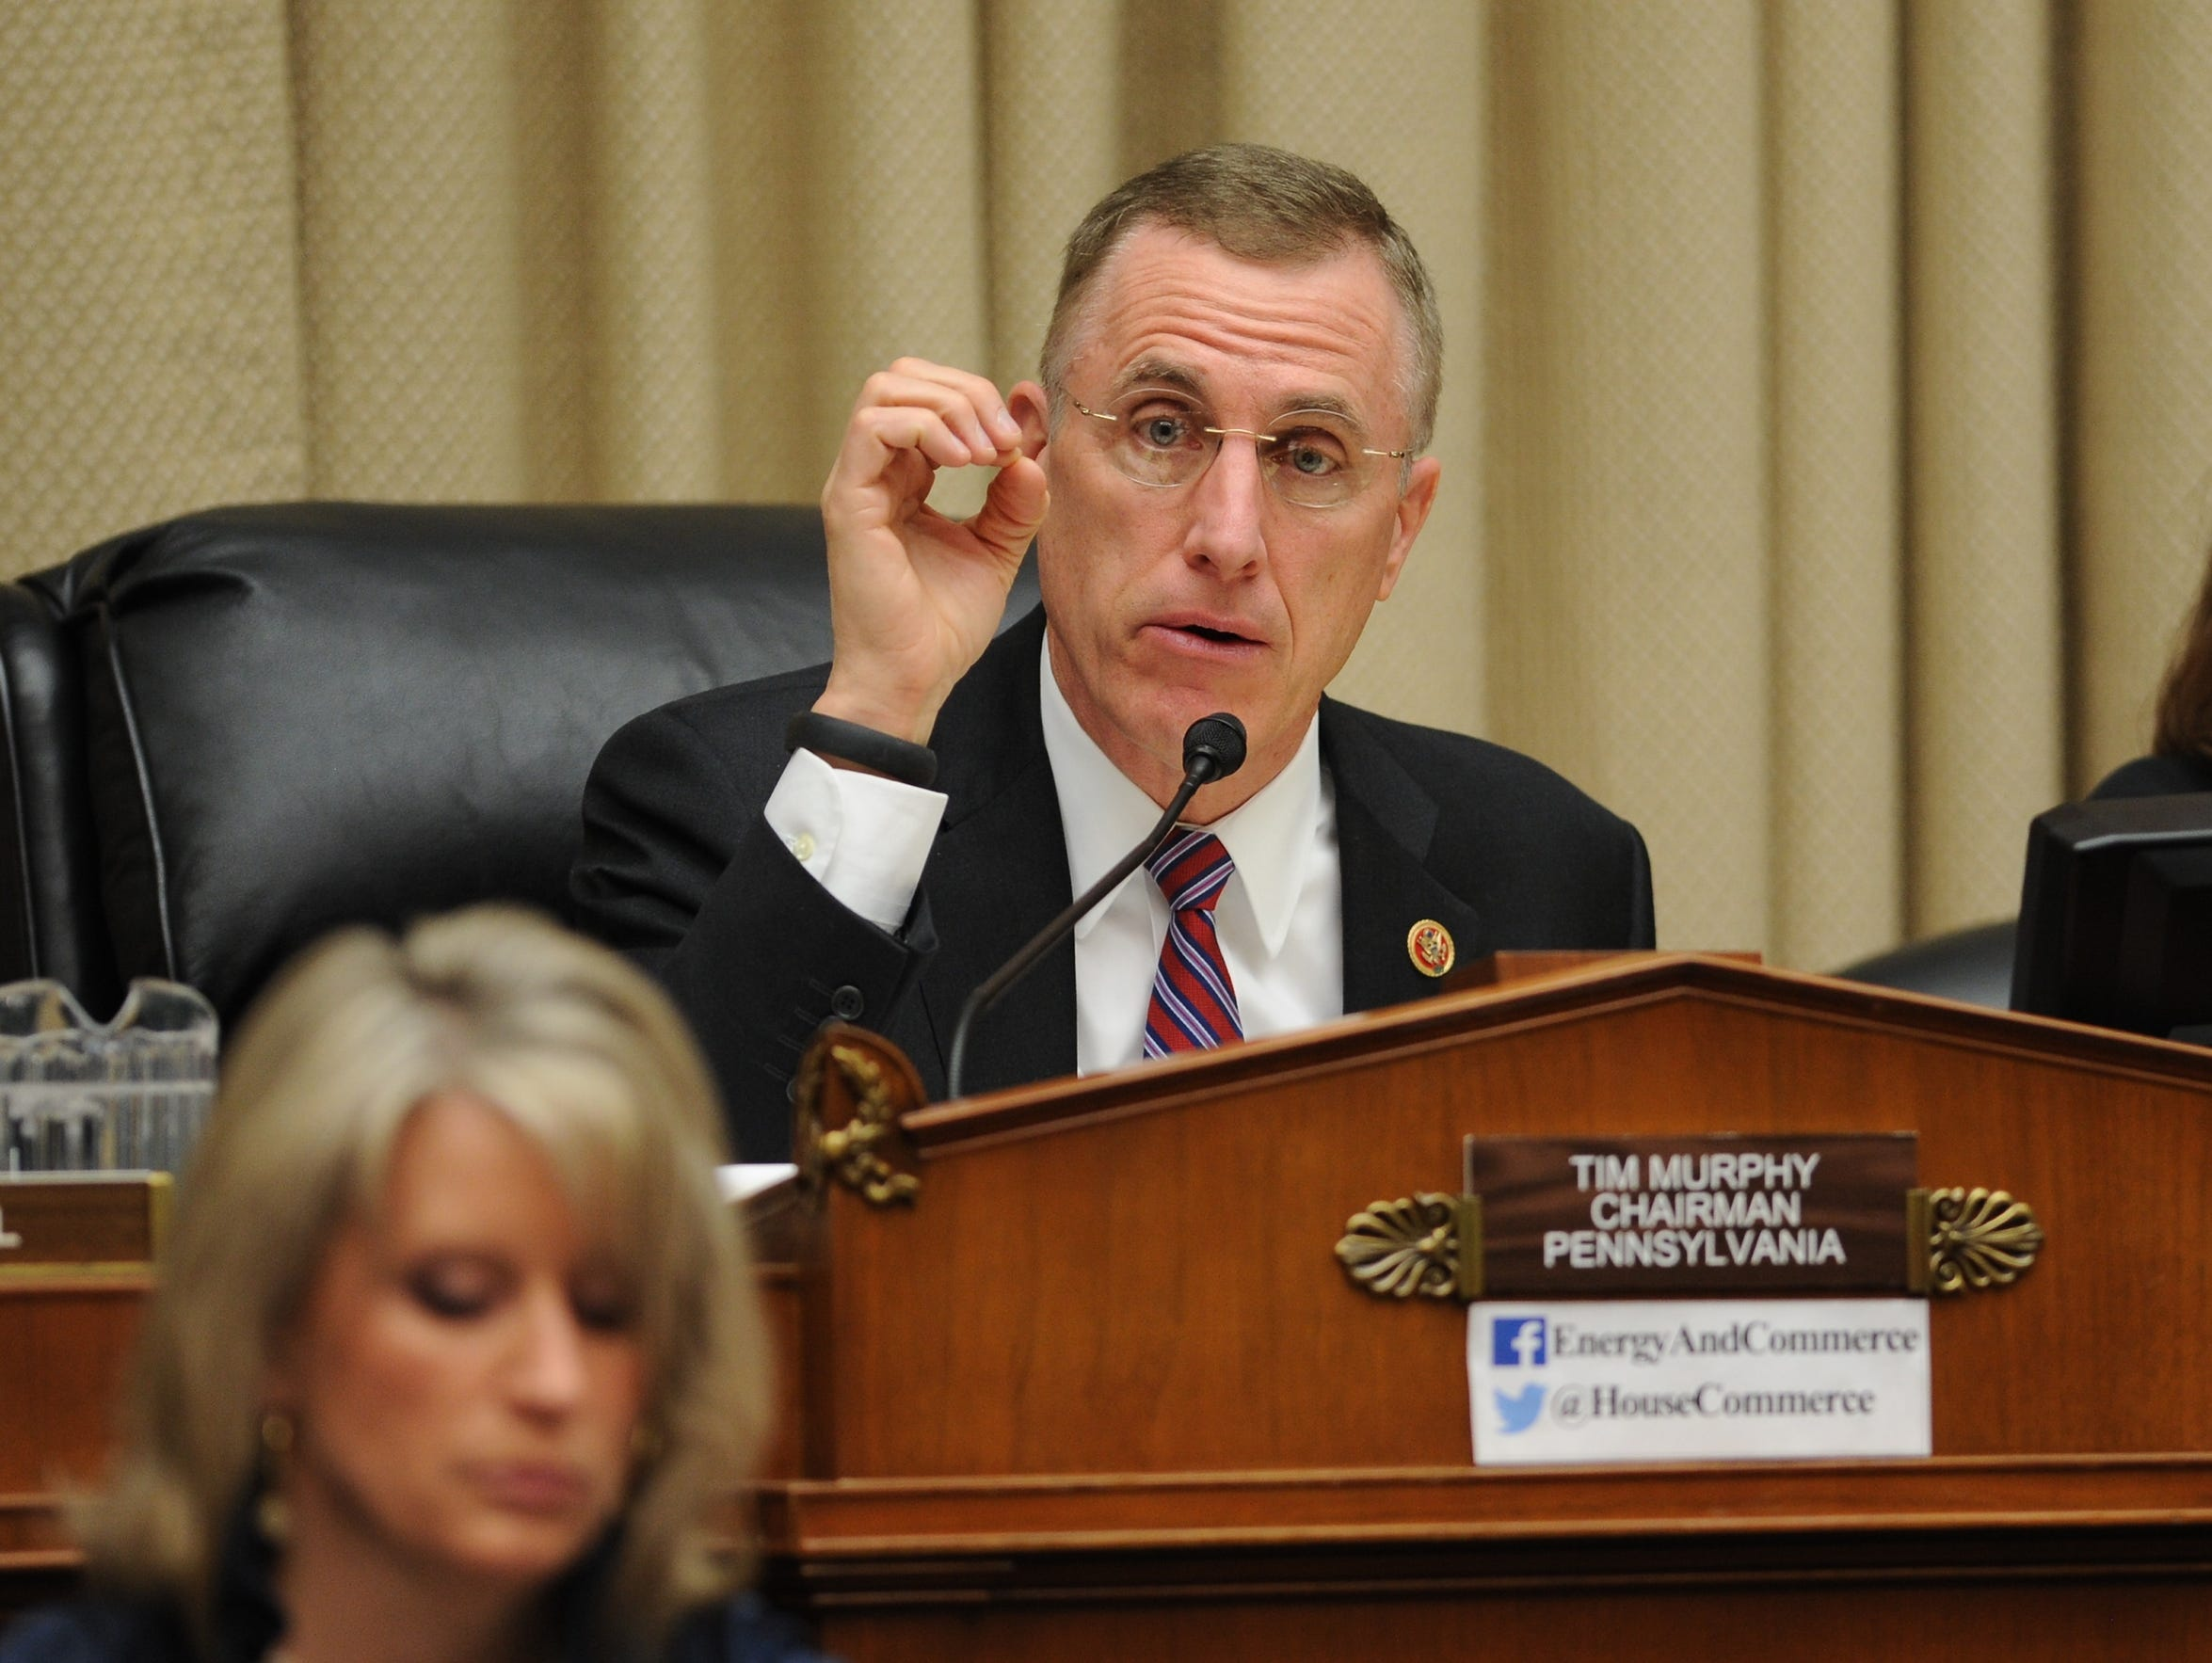 Rep. Tim Murphy, R-Pa., chairs a congressional hearing